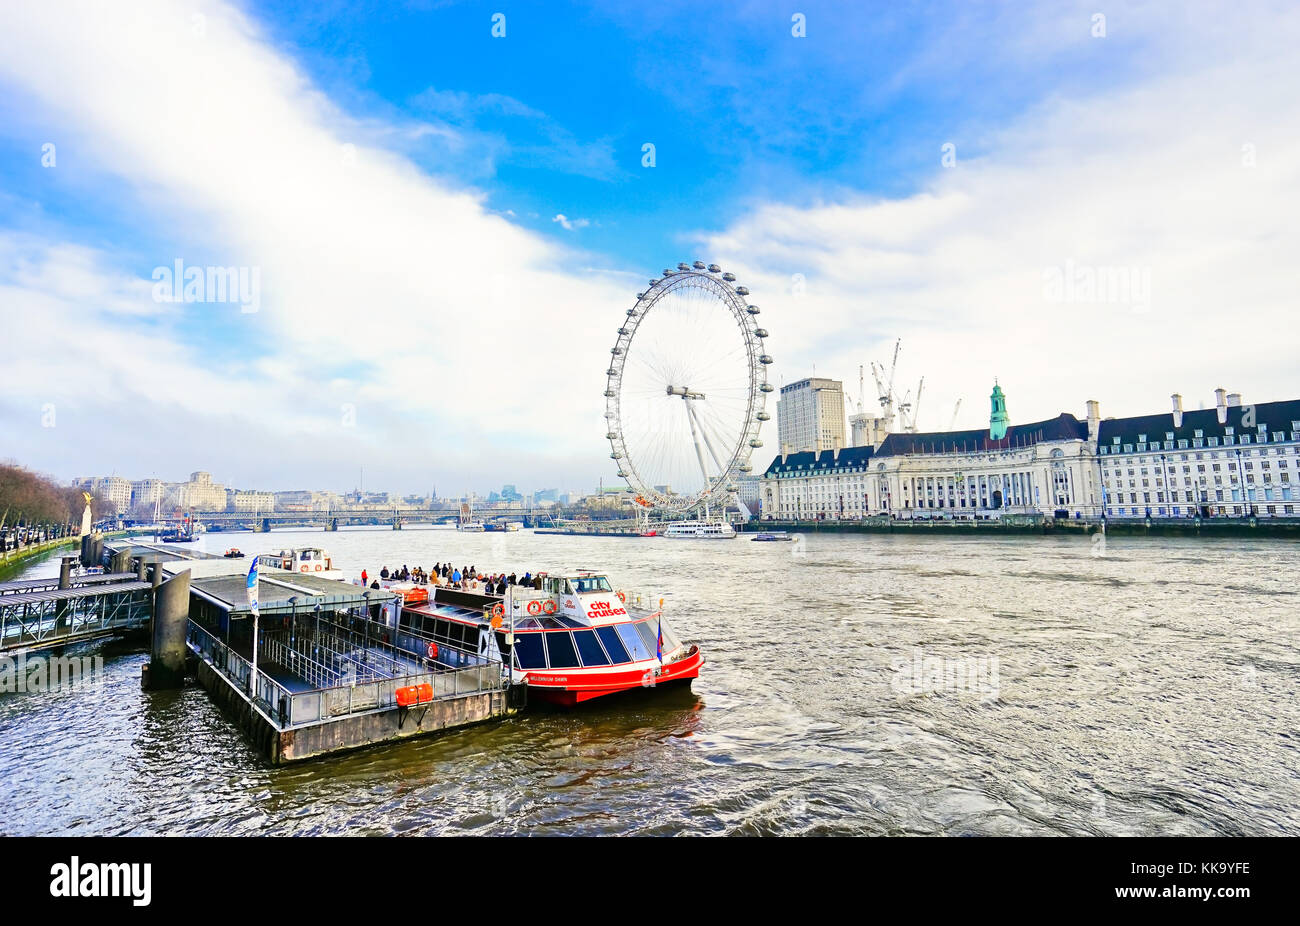 Landmark symbol symbolic ferris wheel stock photos landmark london uk february 5 2017 view of the river thames with london biocorpaavc